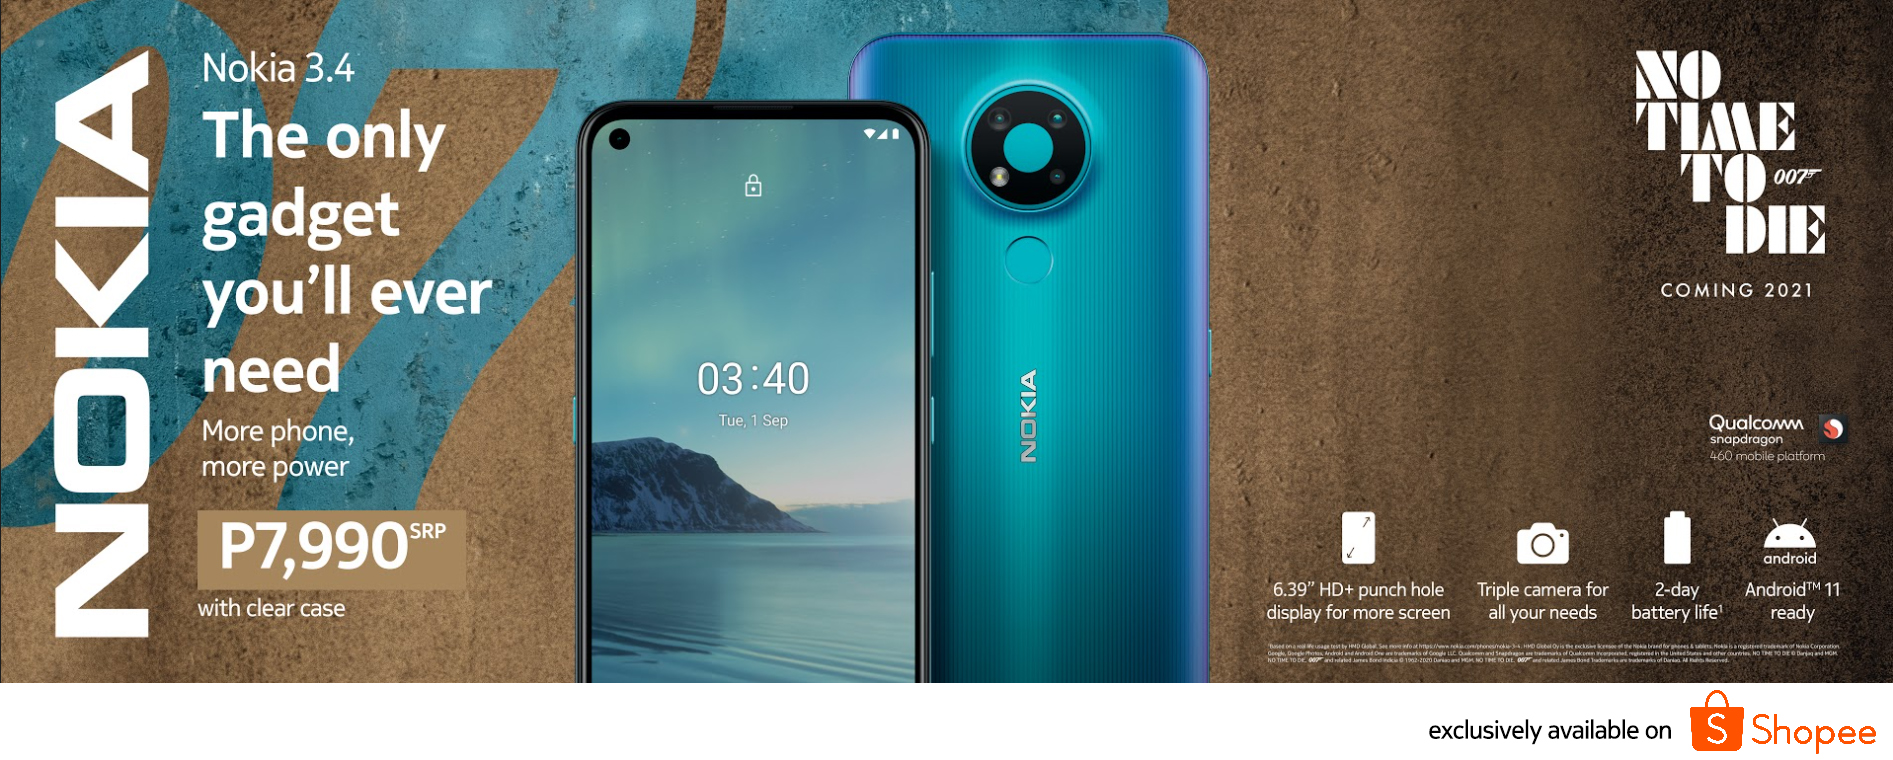 Nokia 3.4 Now Available on Shopee